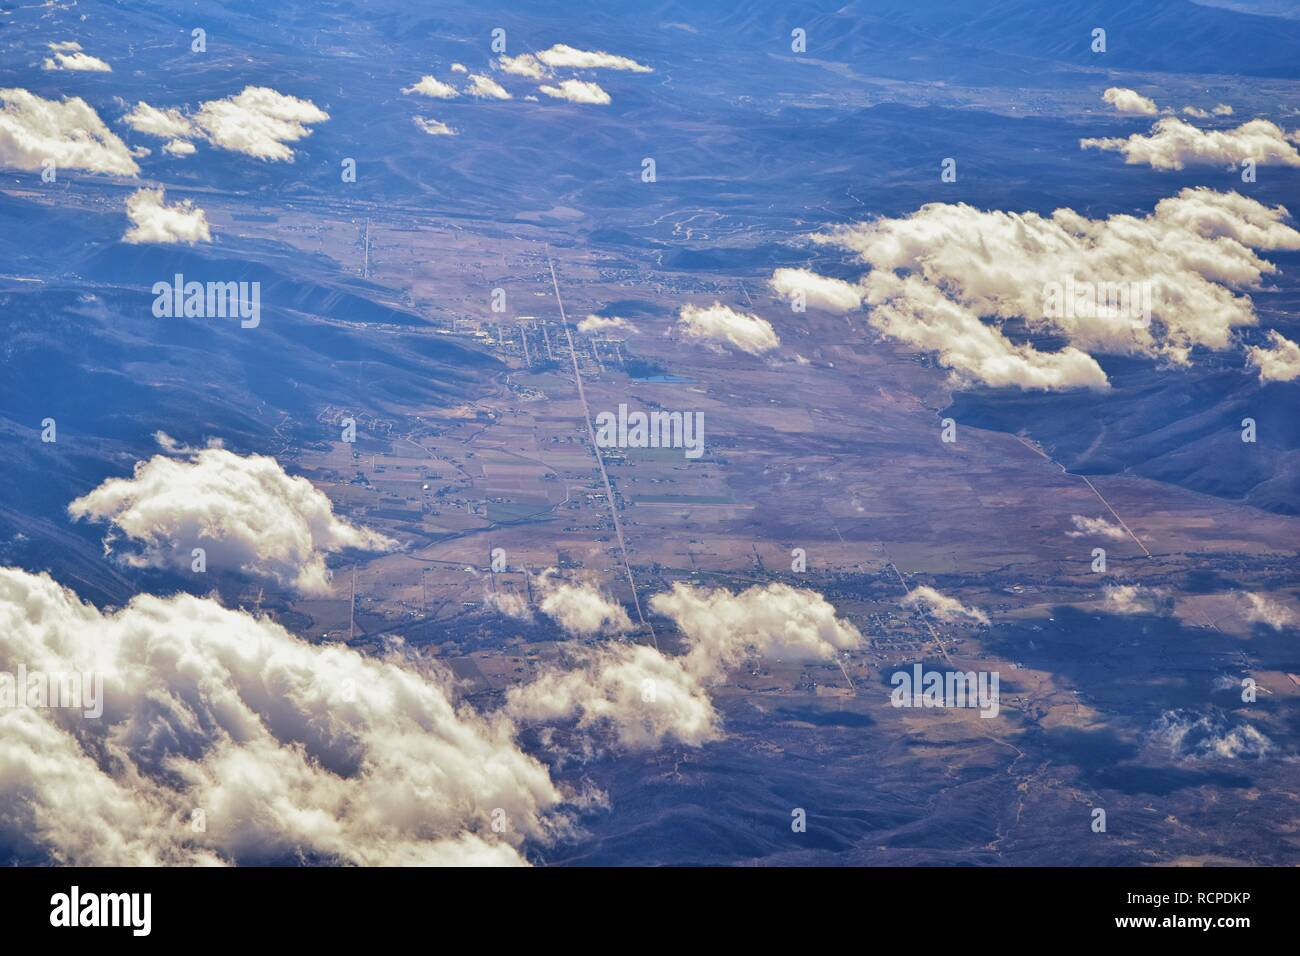 Aerial view of topographical Rocky Mountain landscapes on flight over Colorado and Utah during winter. Grand sweeping views of rivers, mountain and la - Stock Image